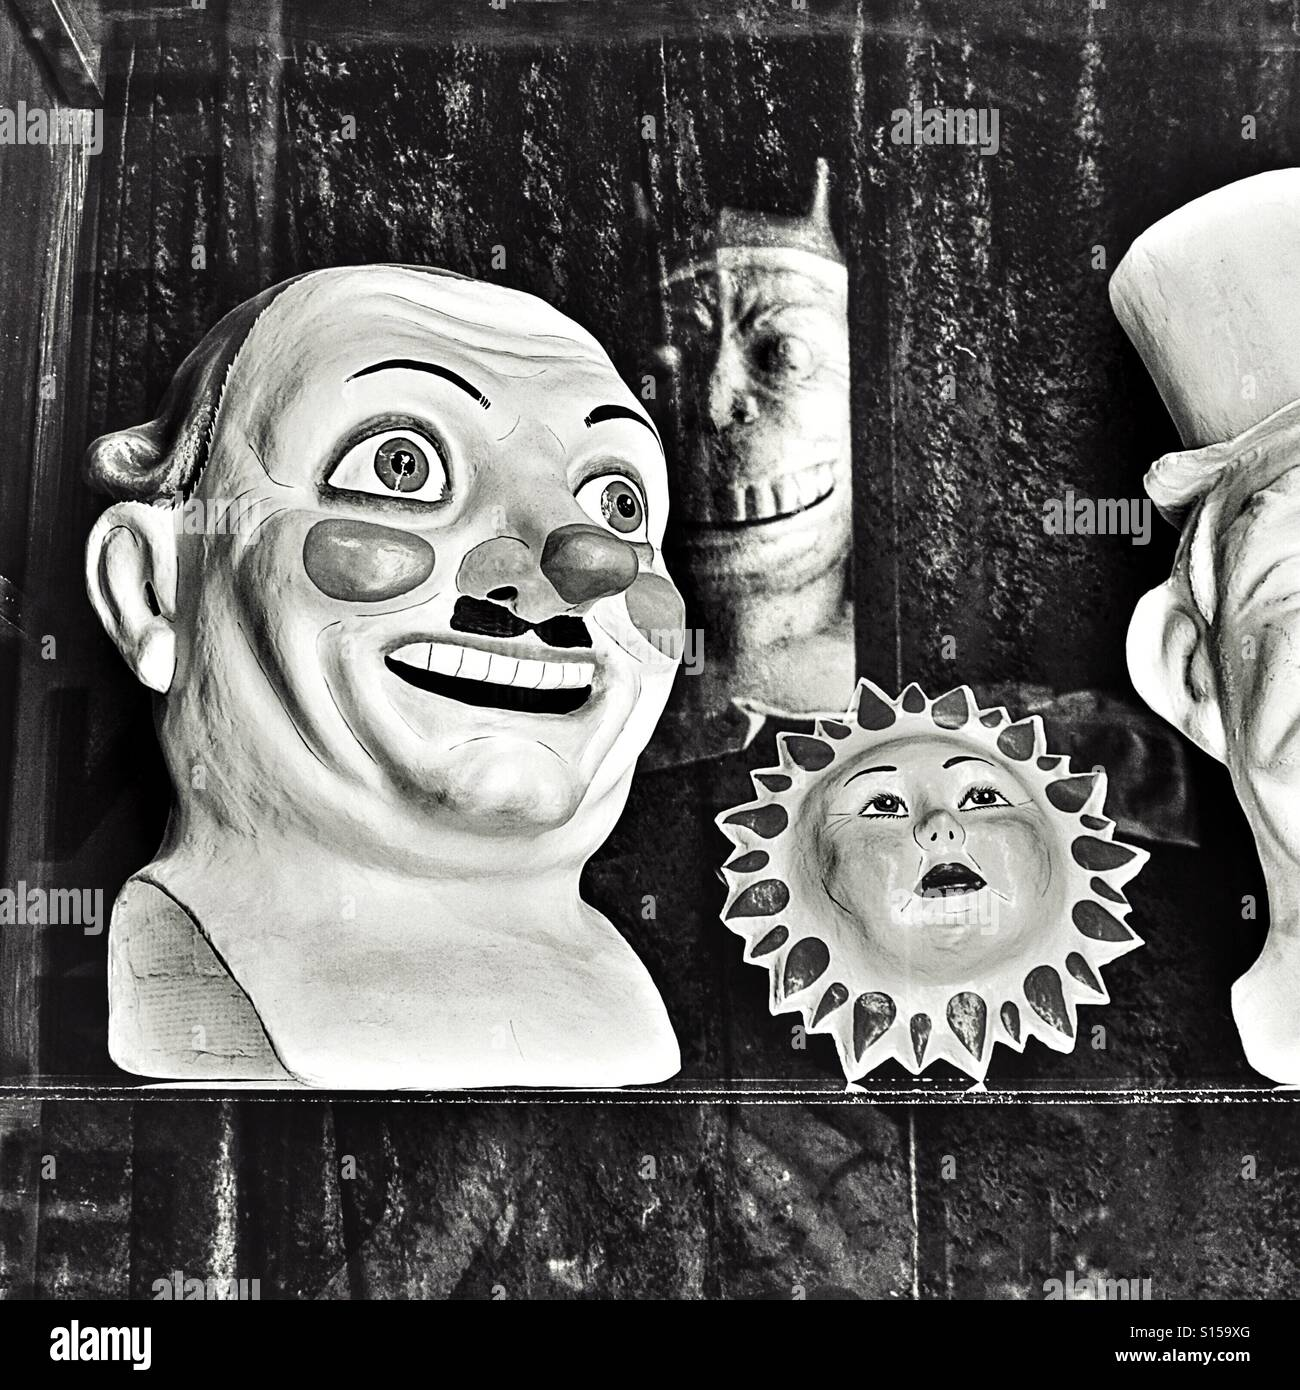 Traditional papier mache head in magic shop window - Stock Image